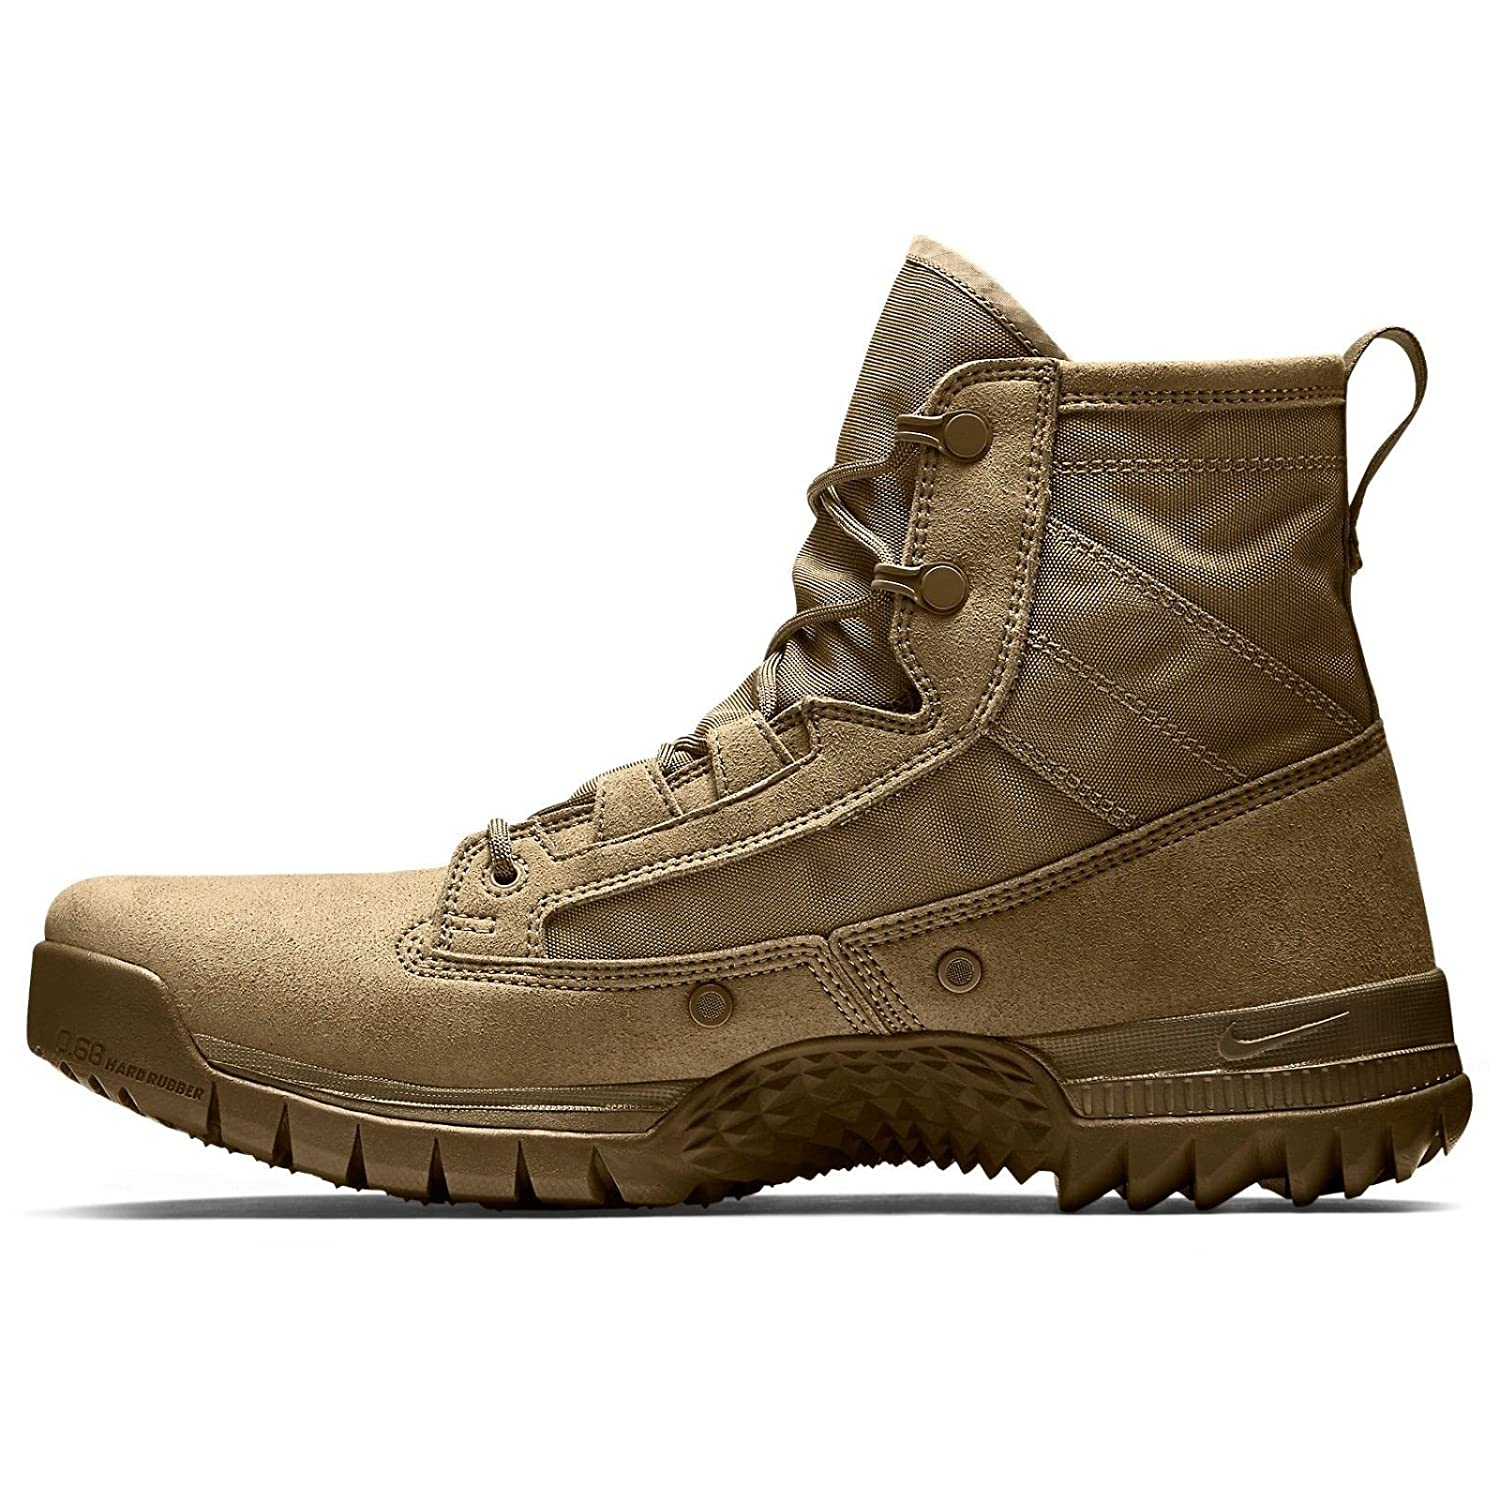 8c728ac0a970 Amazon.com  Nike SFB Jungle 6